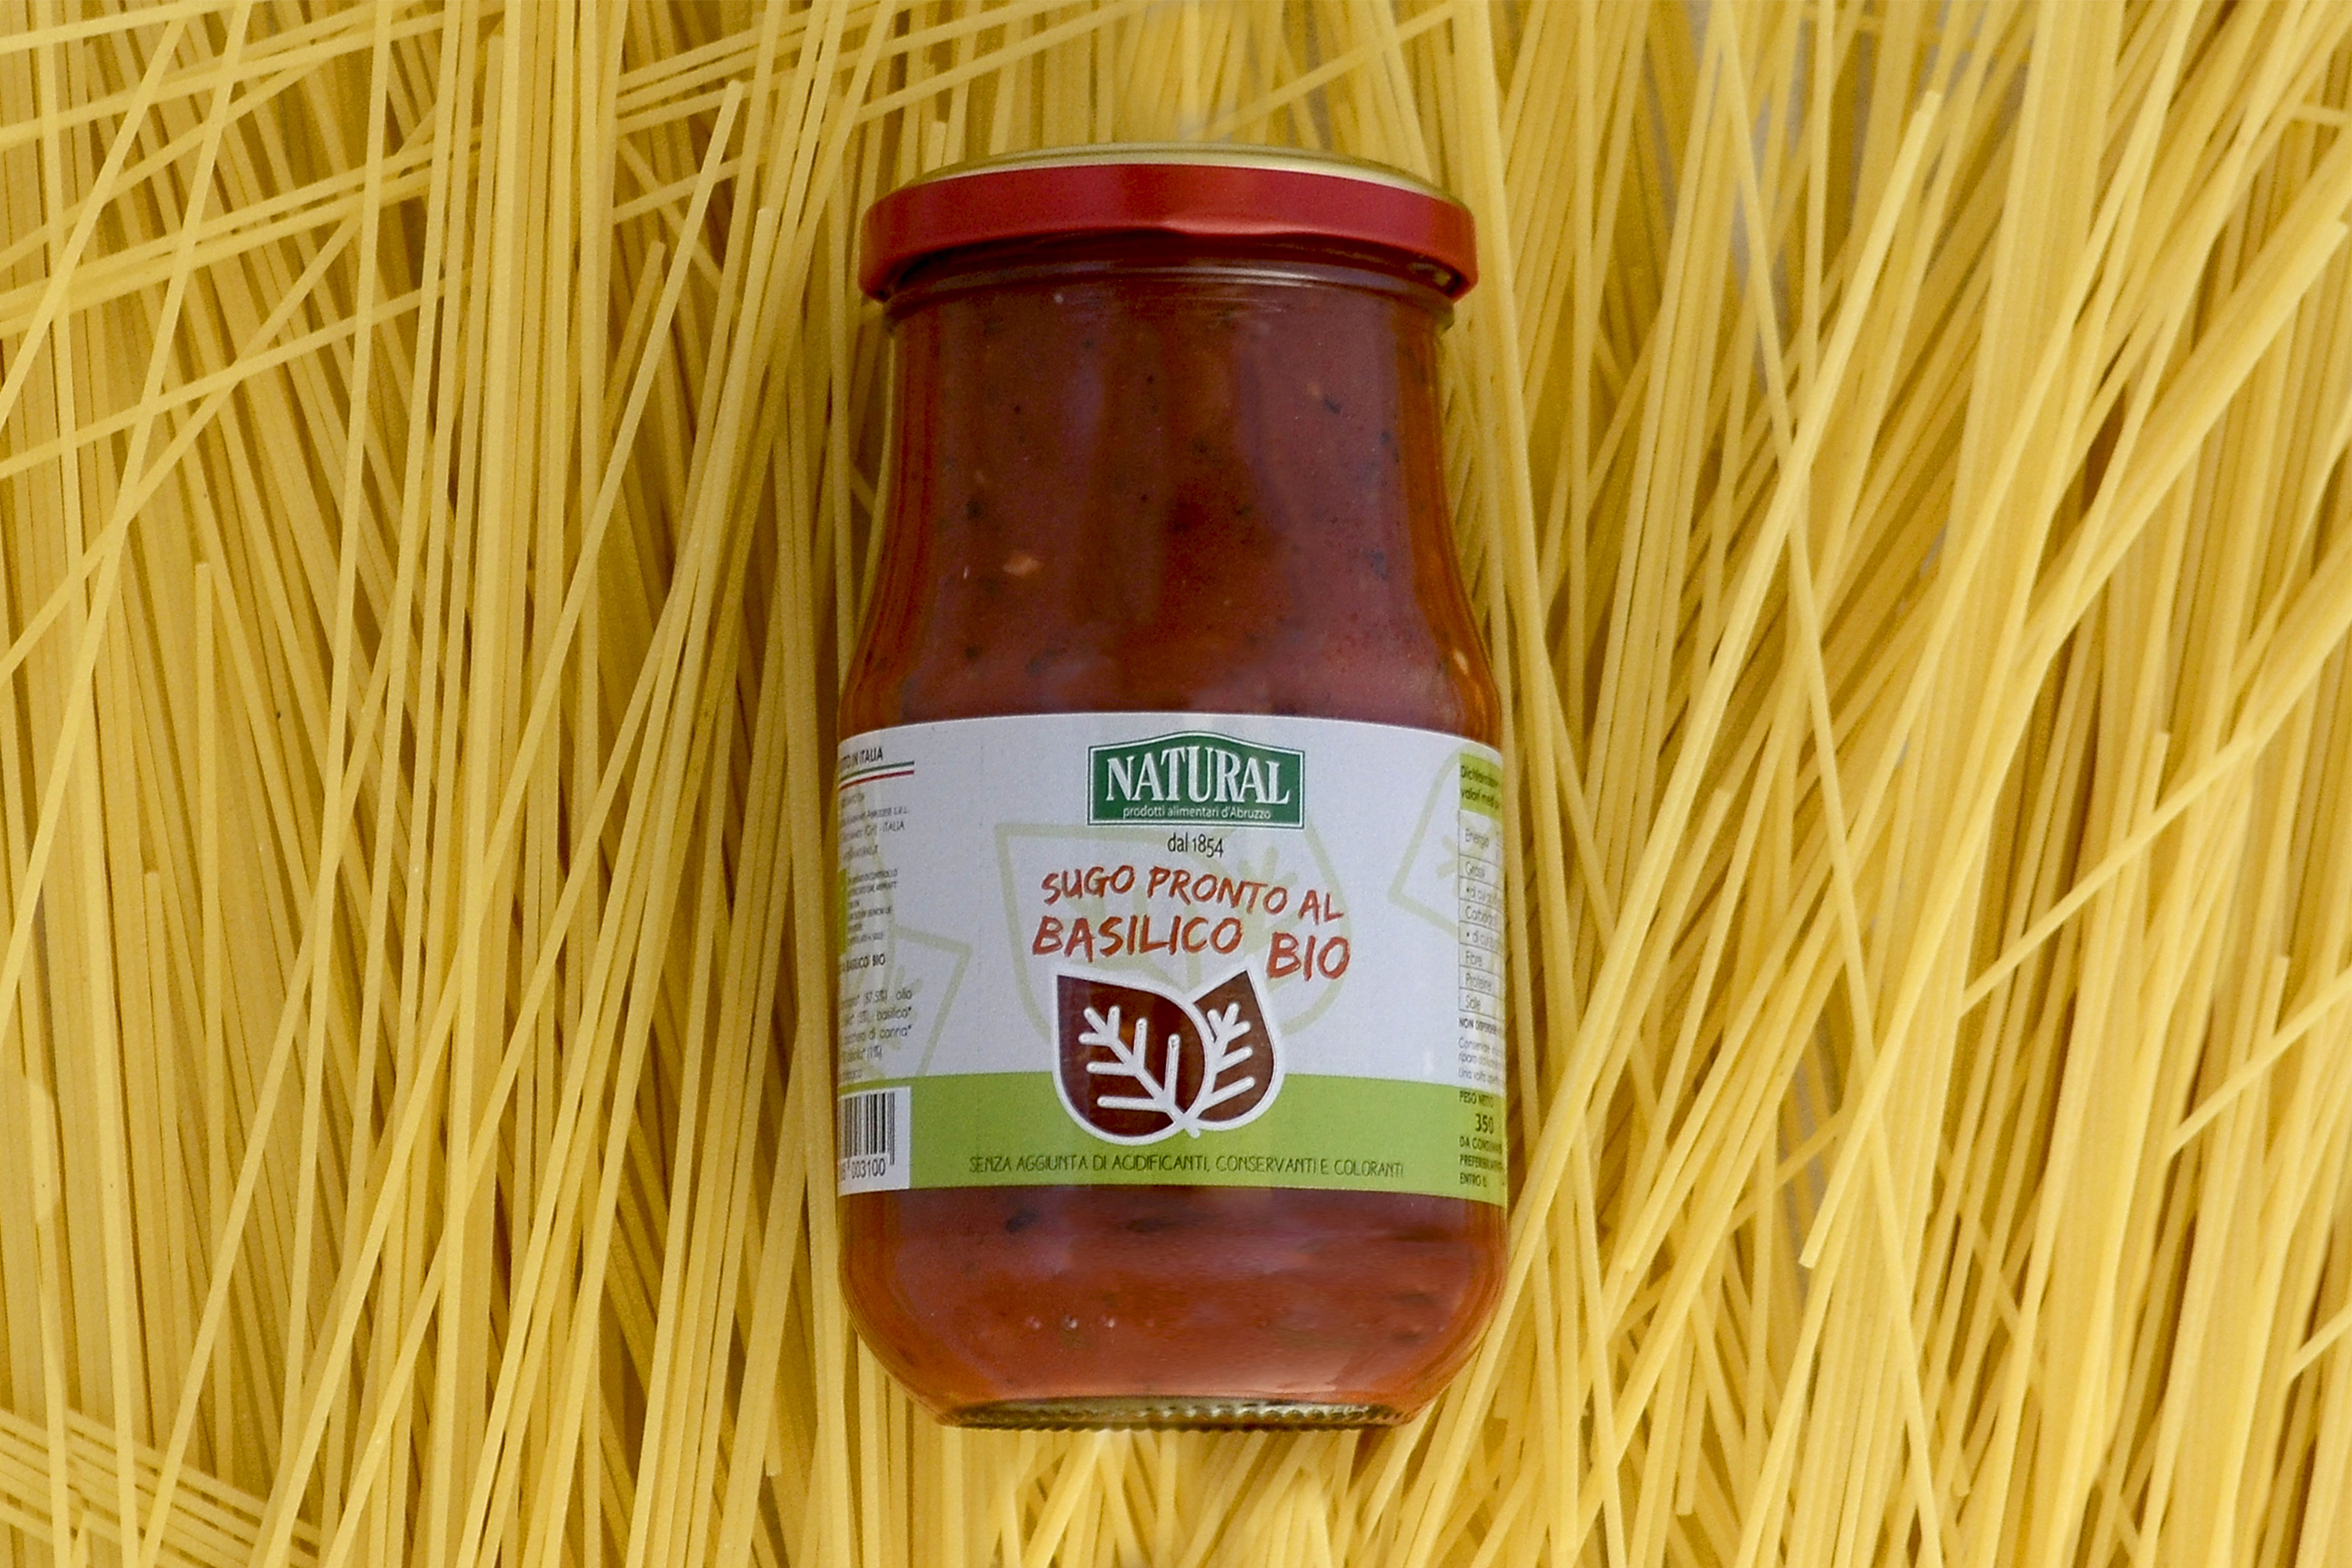 Natural Sugo Pronto Biologico Basilico